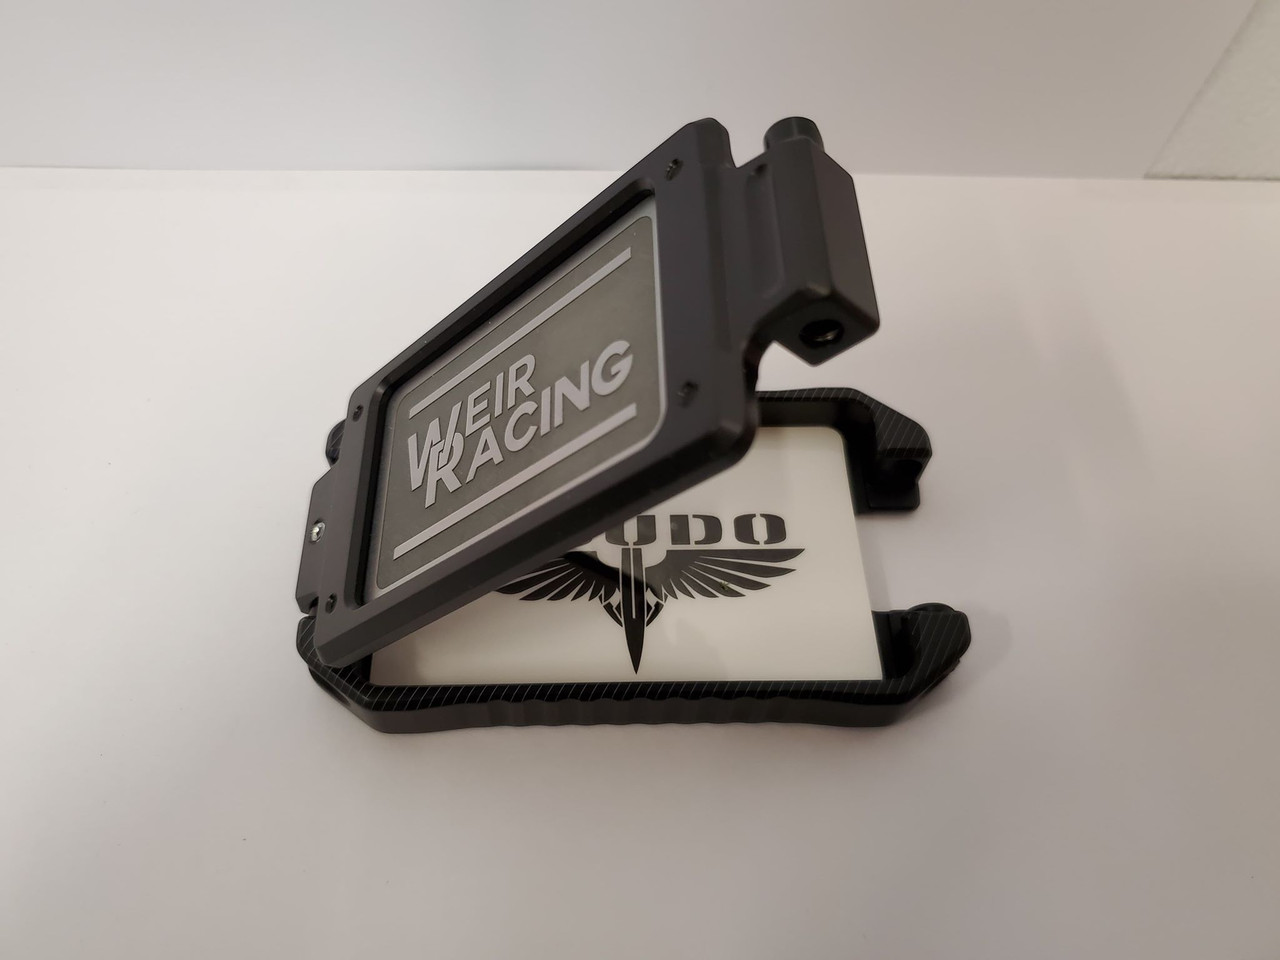 Weir Racing SCUDO Switch Wallet - Black